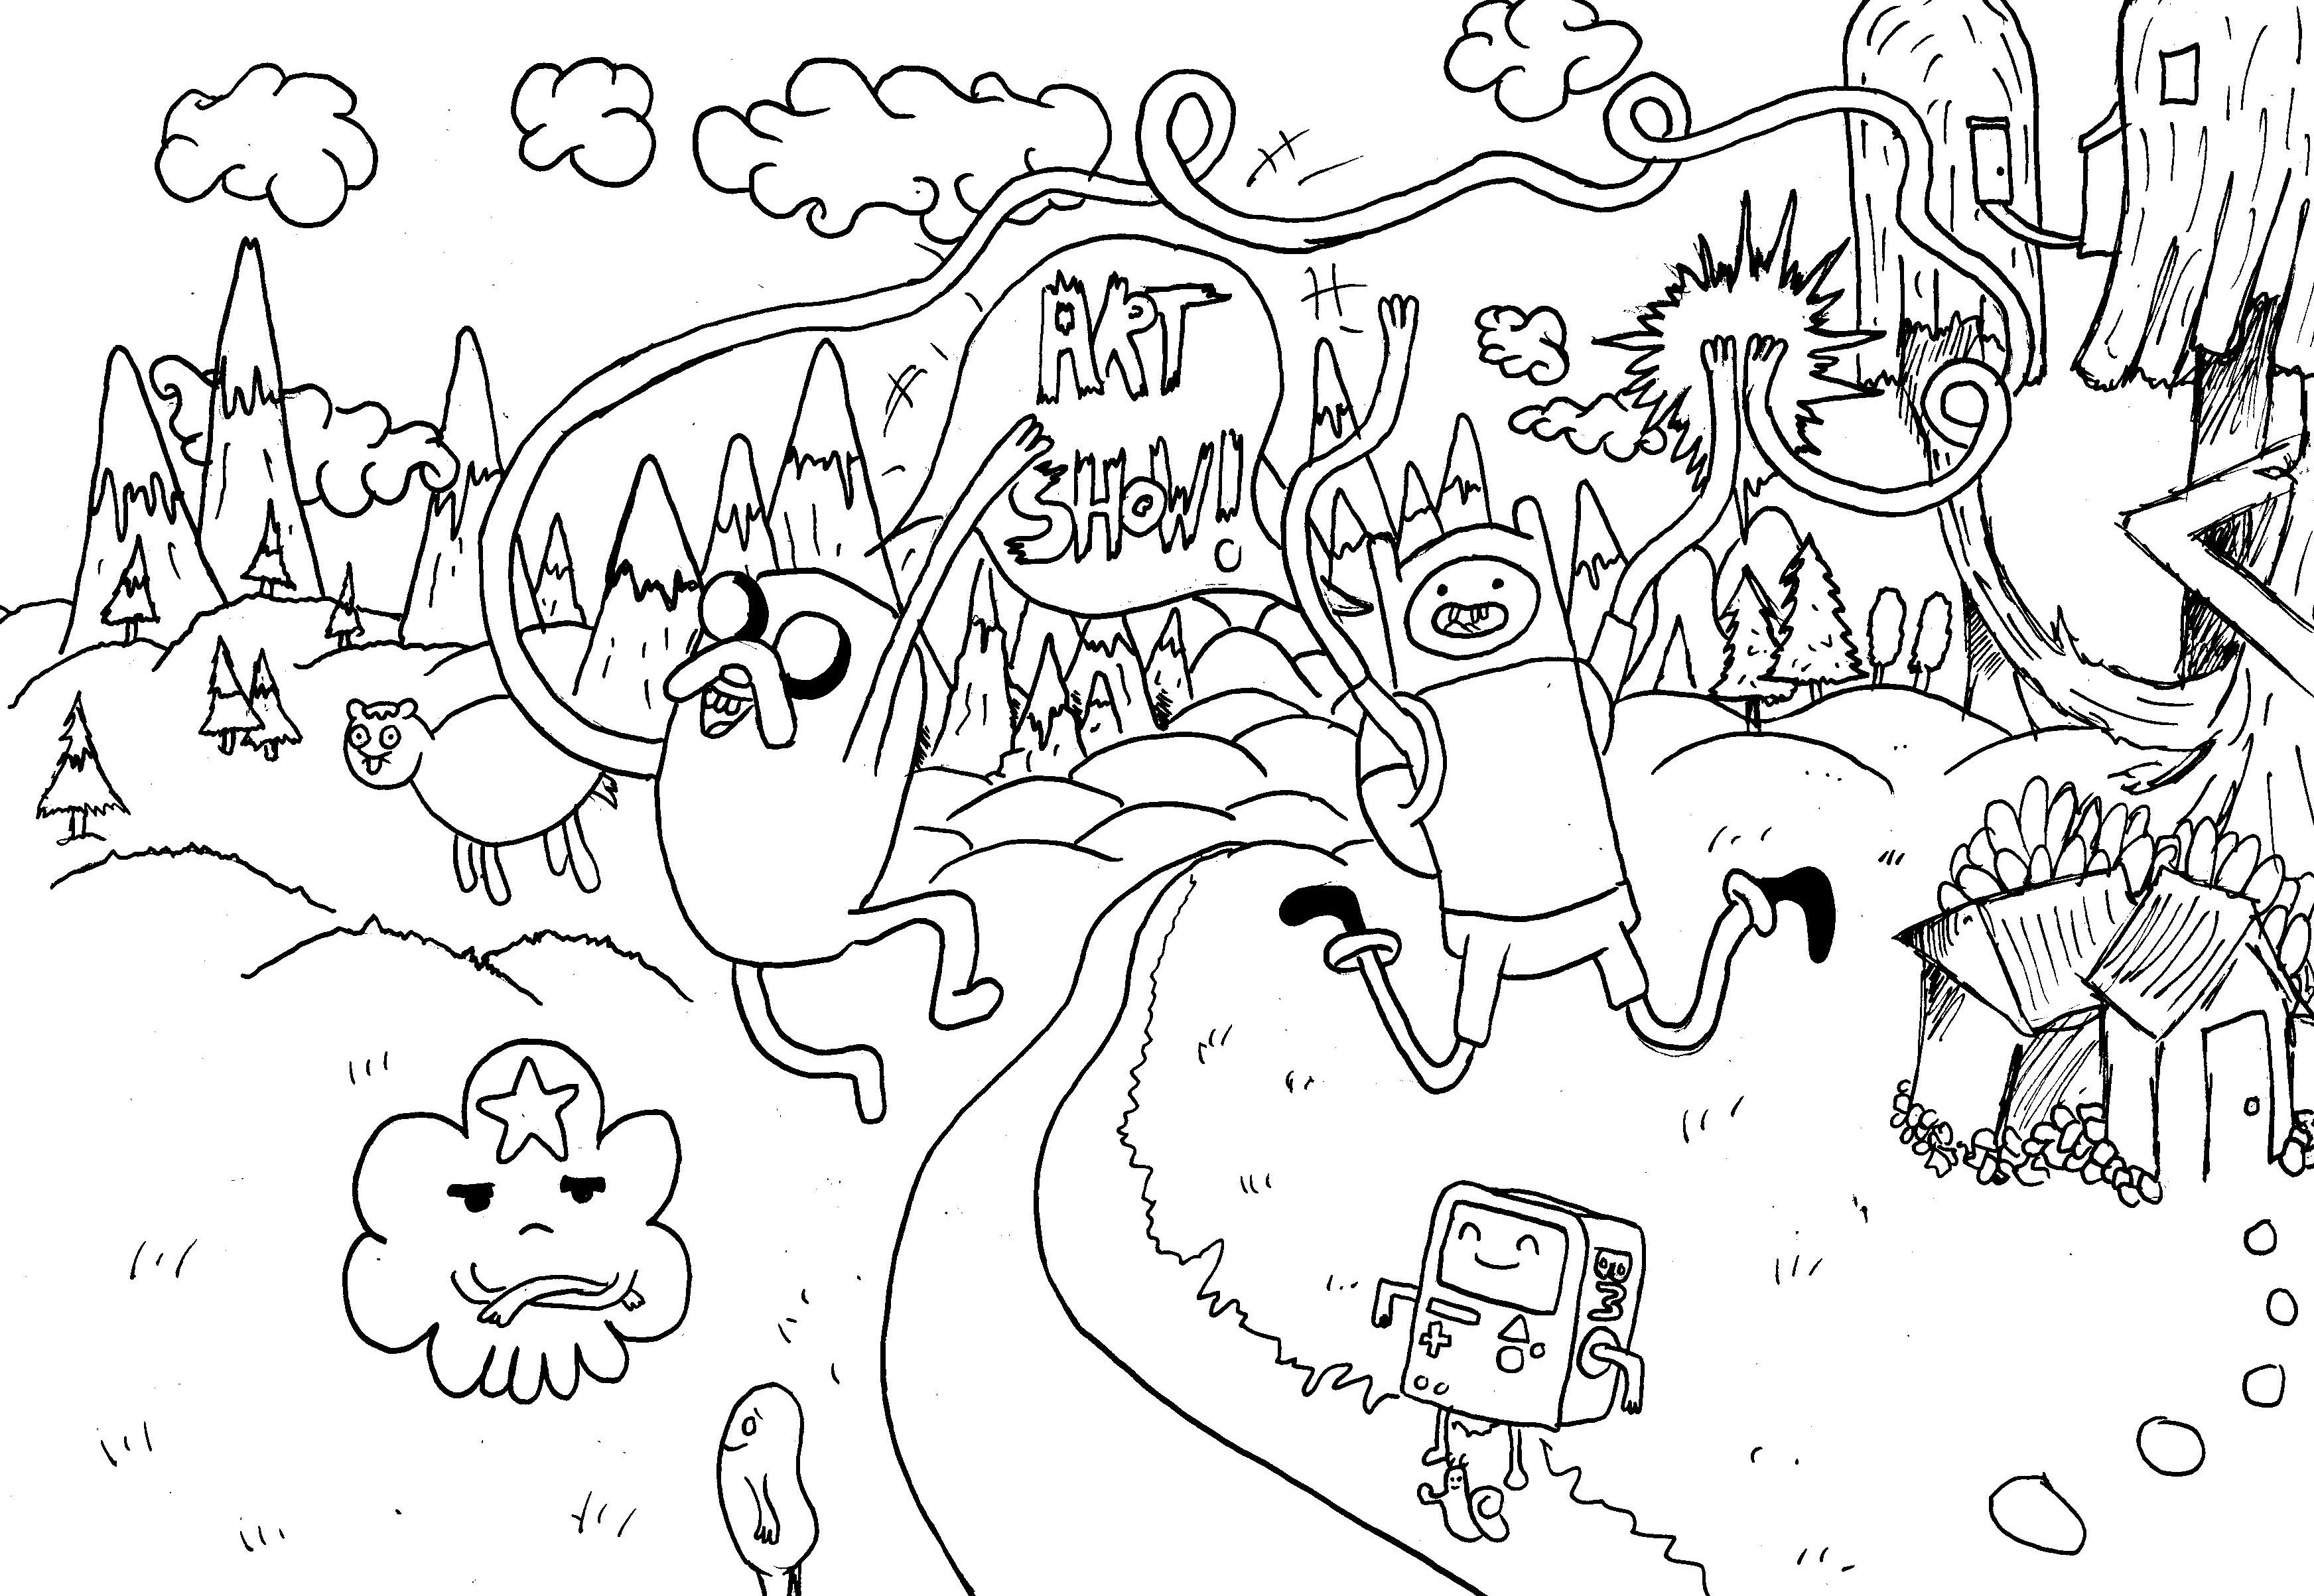 Adventure time front cover